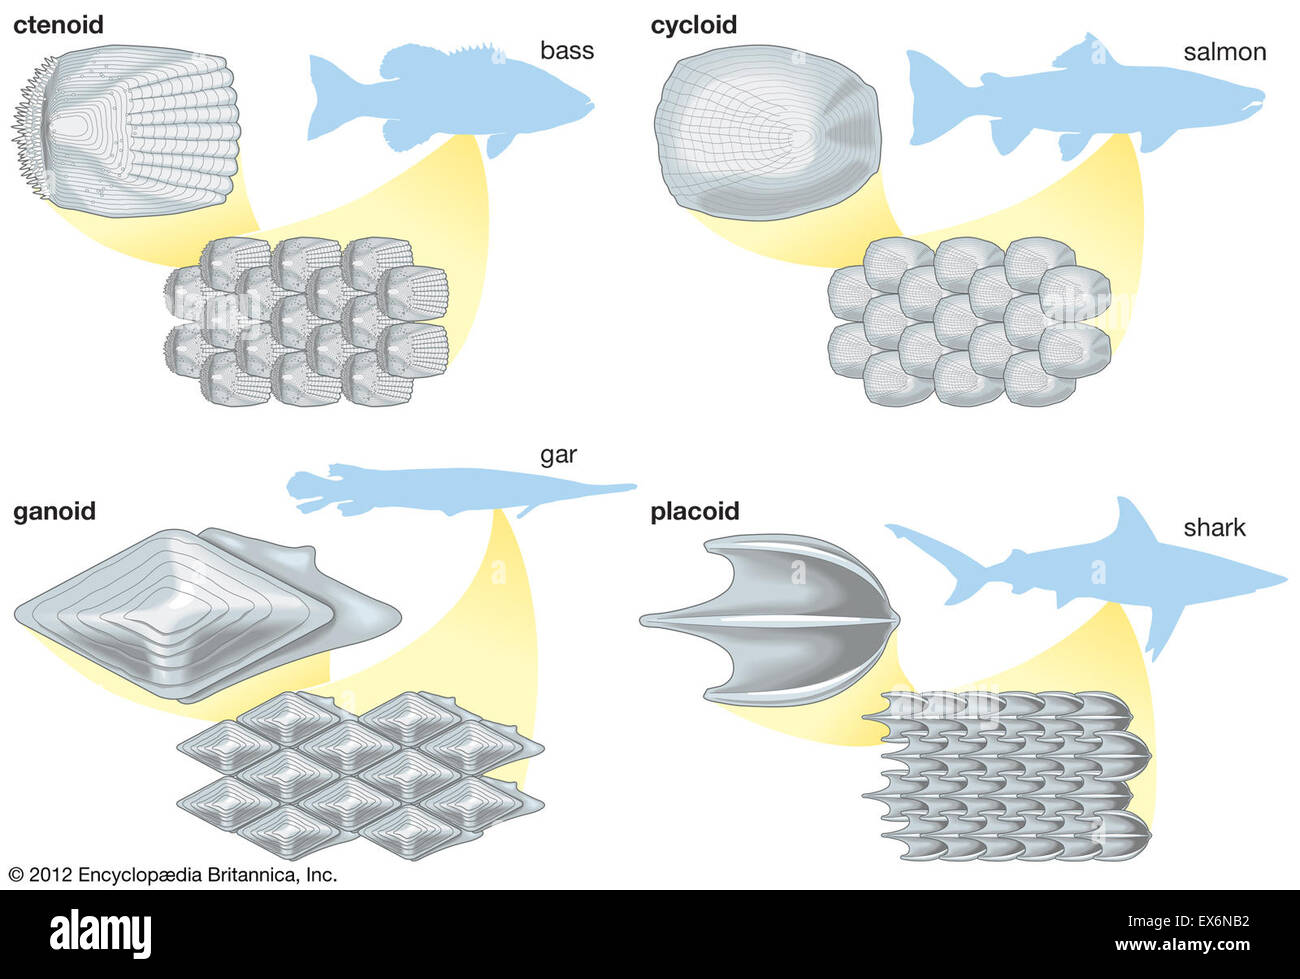 Types of fish scales Stock Photo